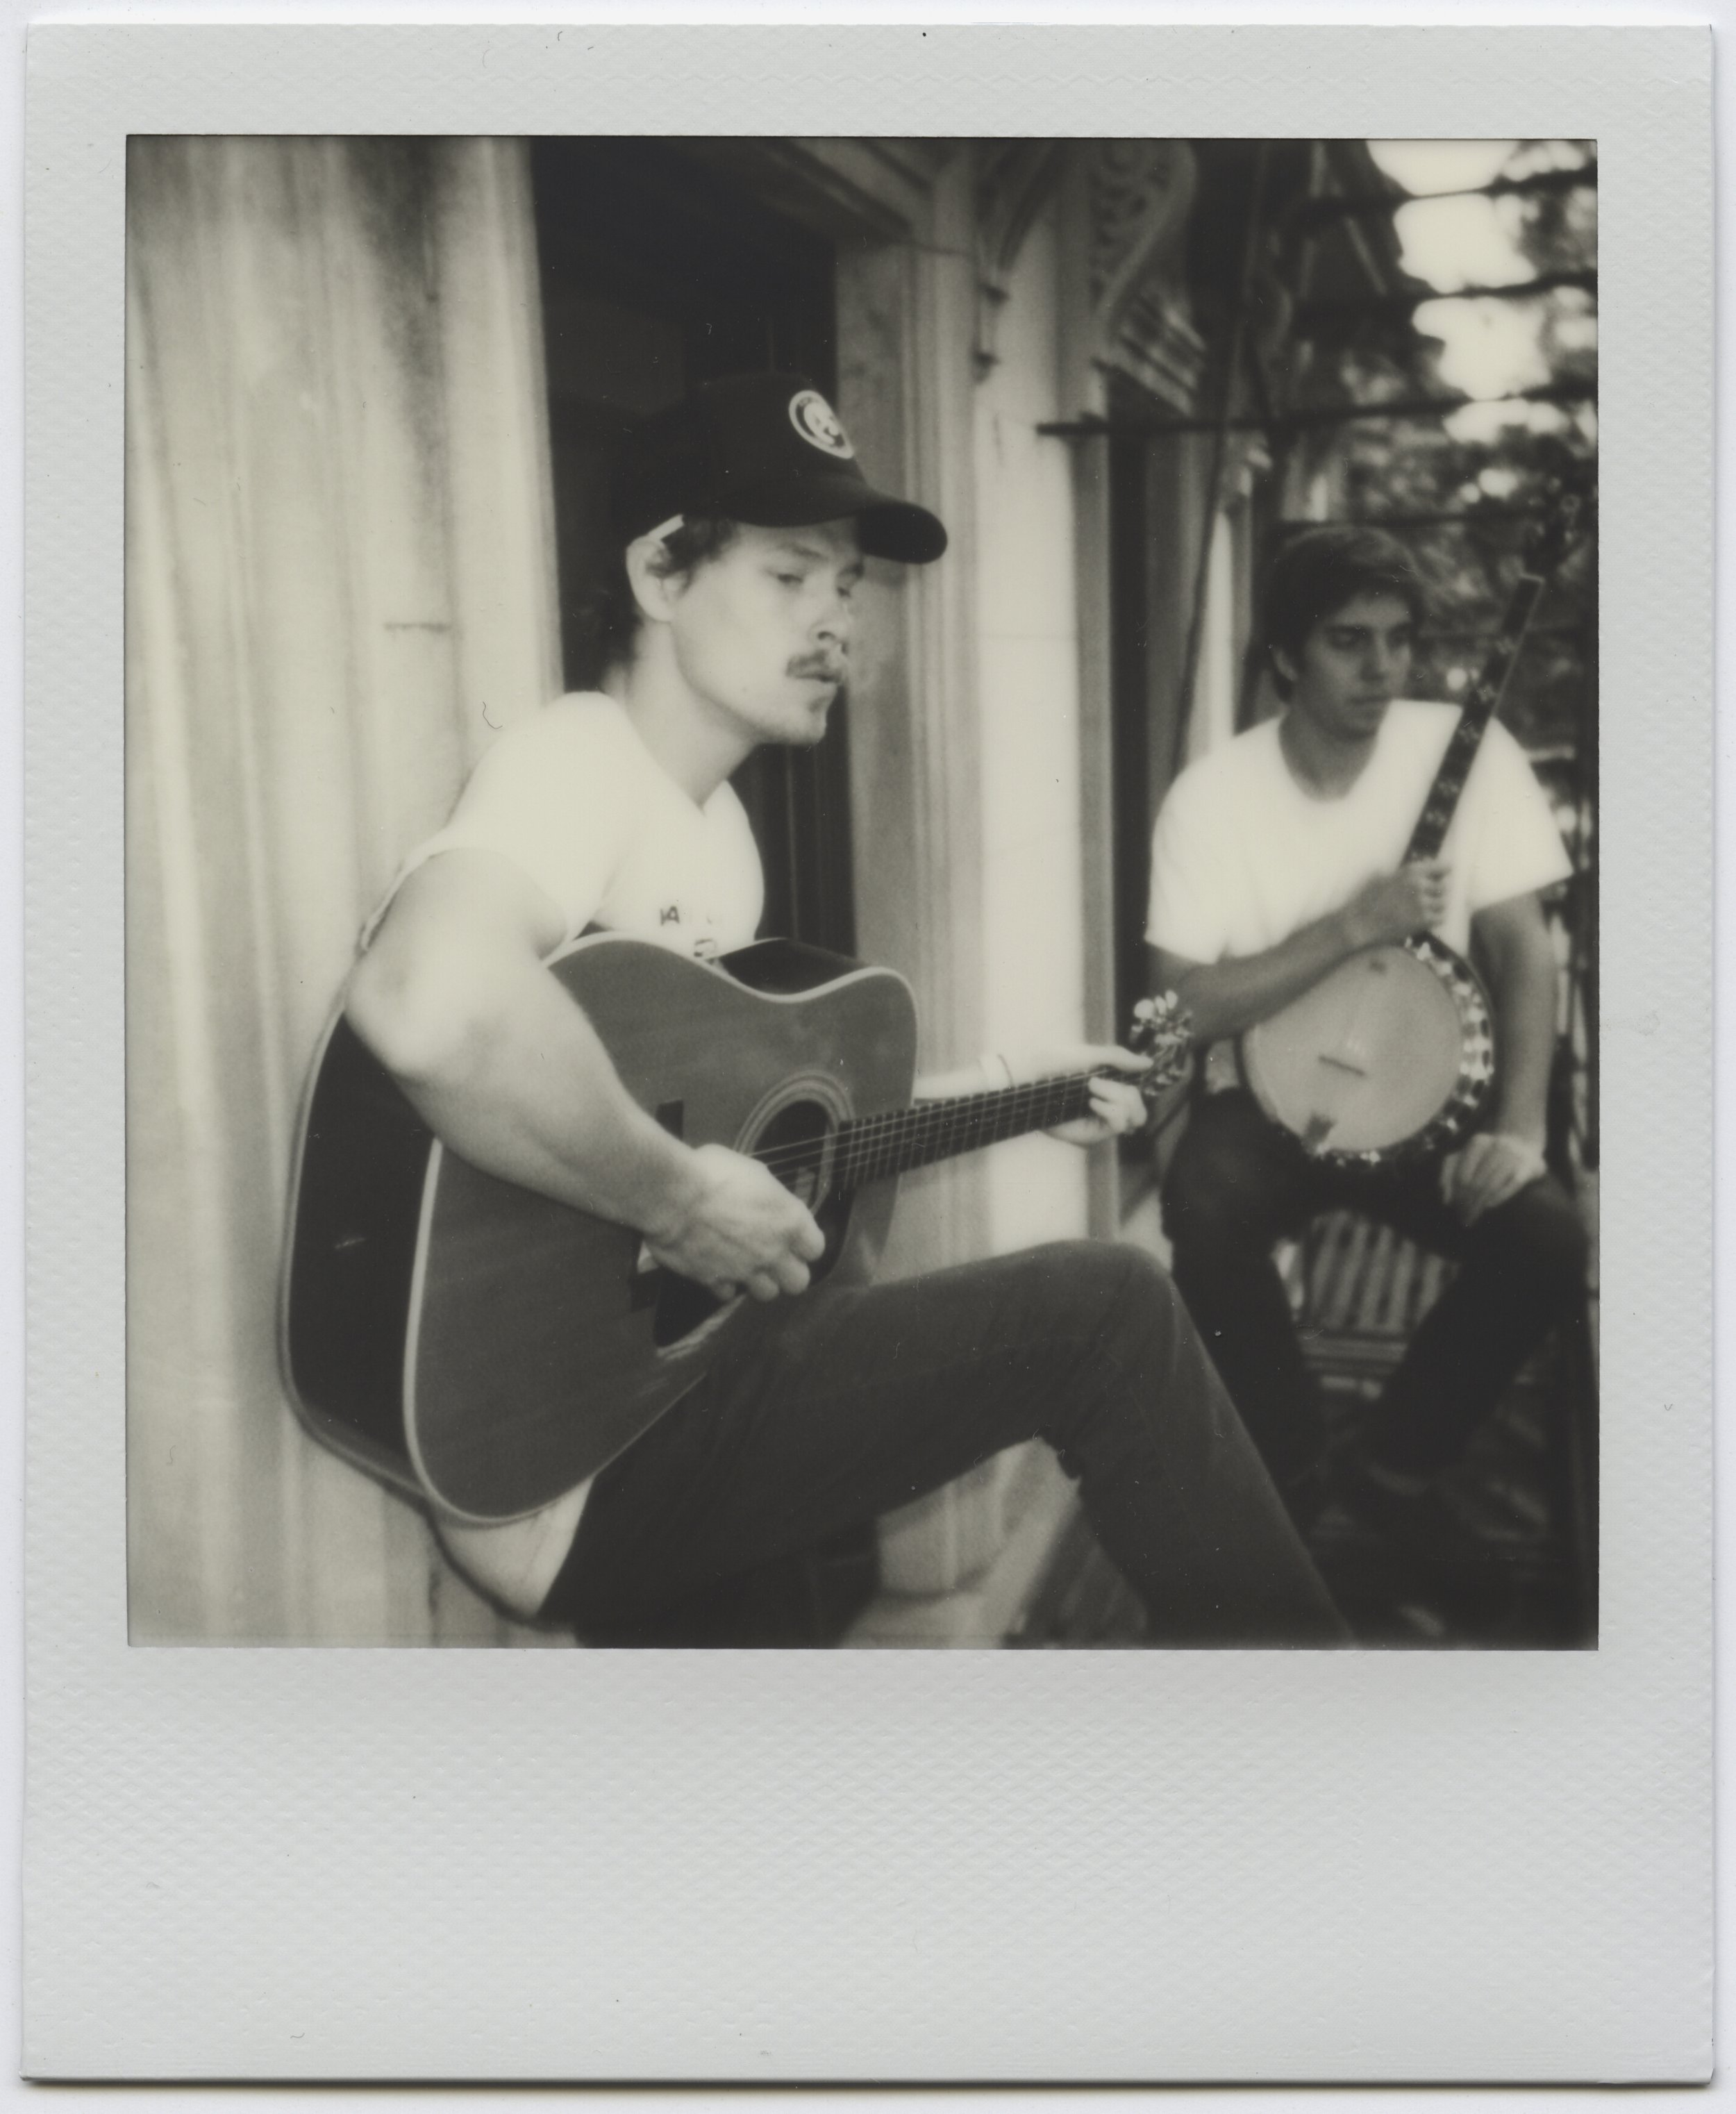 CAAMP Polaroid 01 (1).jpg